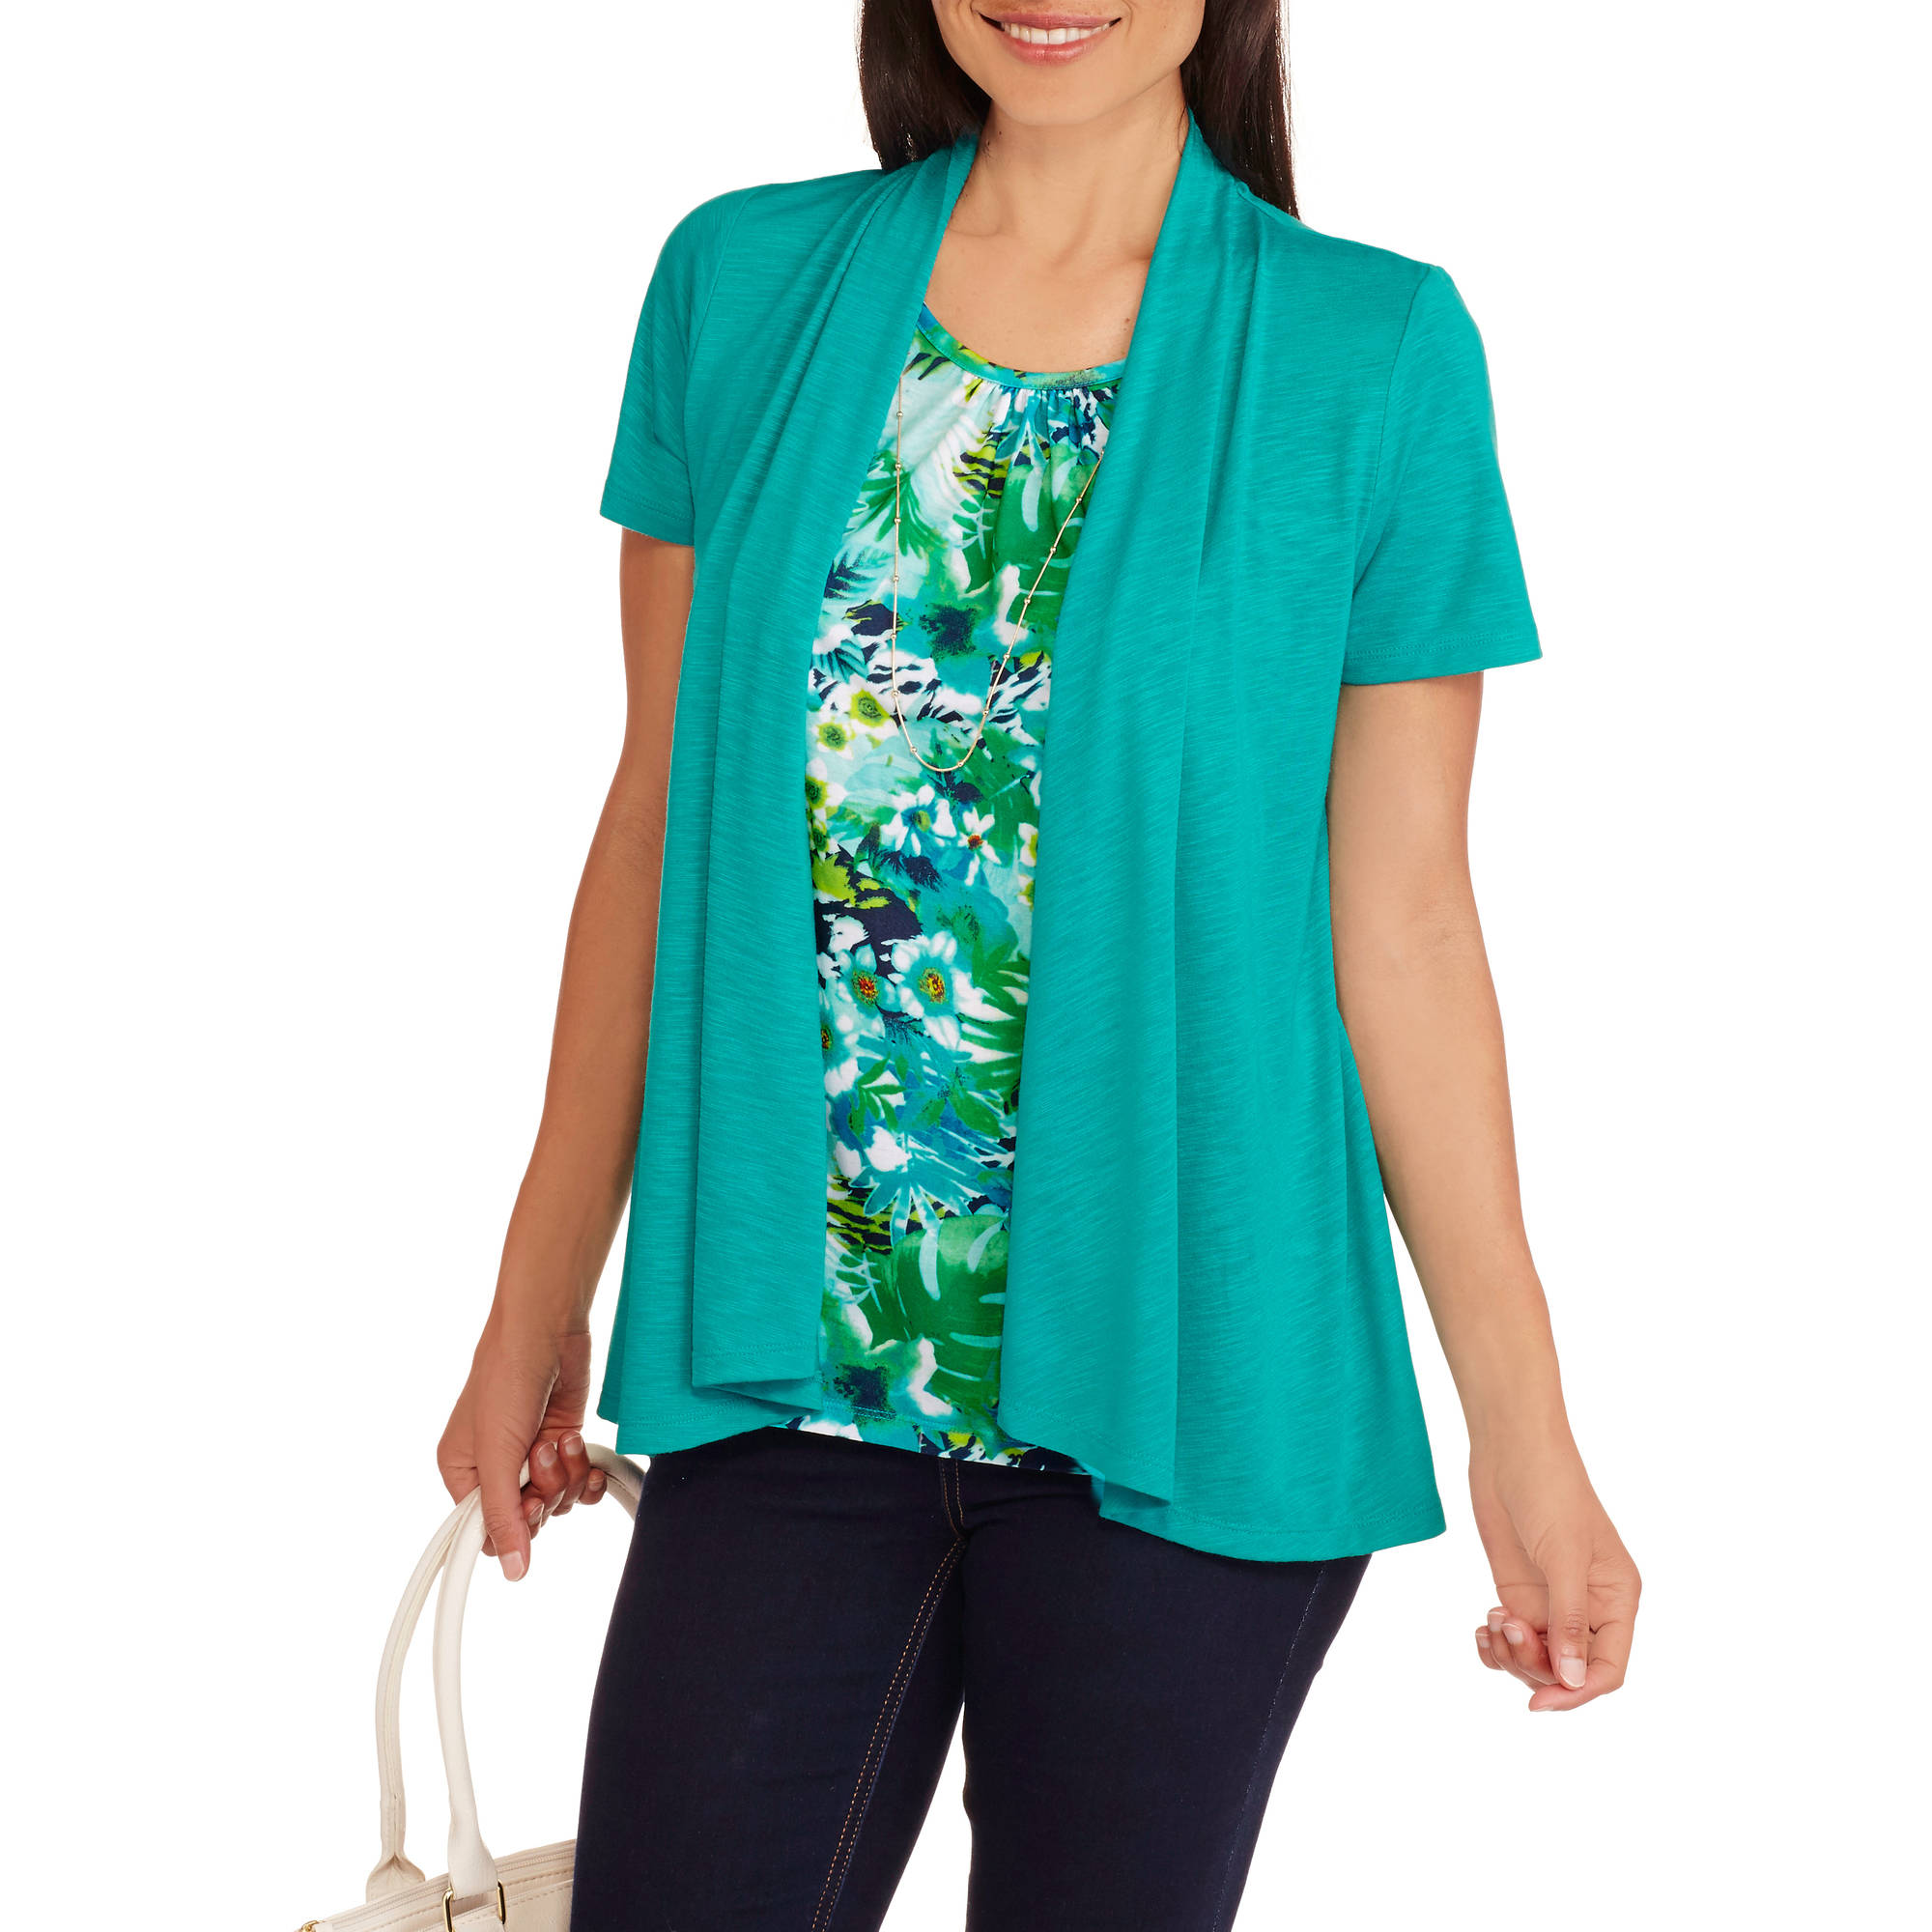 White Stag Women's Short Sleeve 2fer Flyaway Top